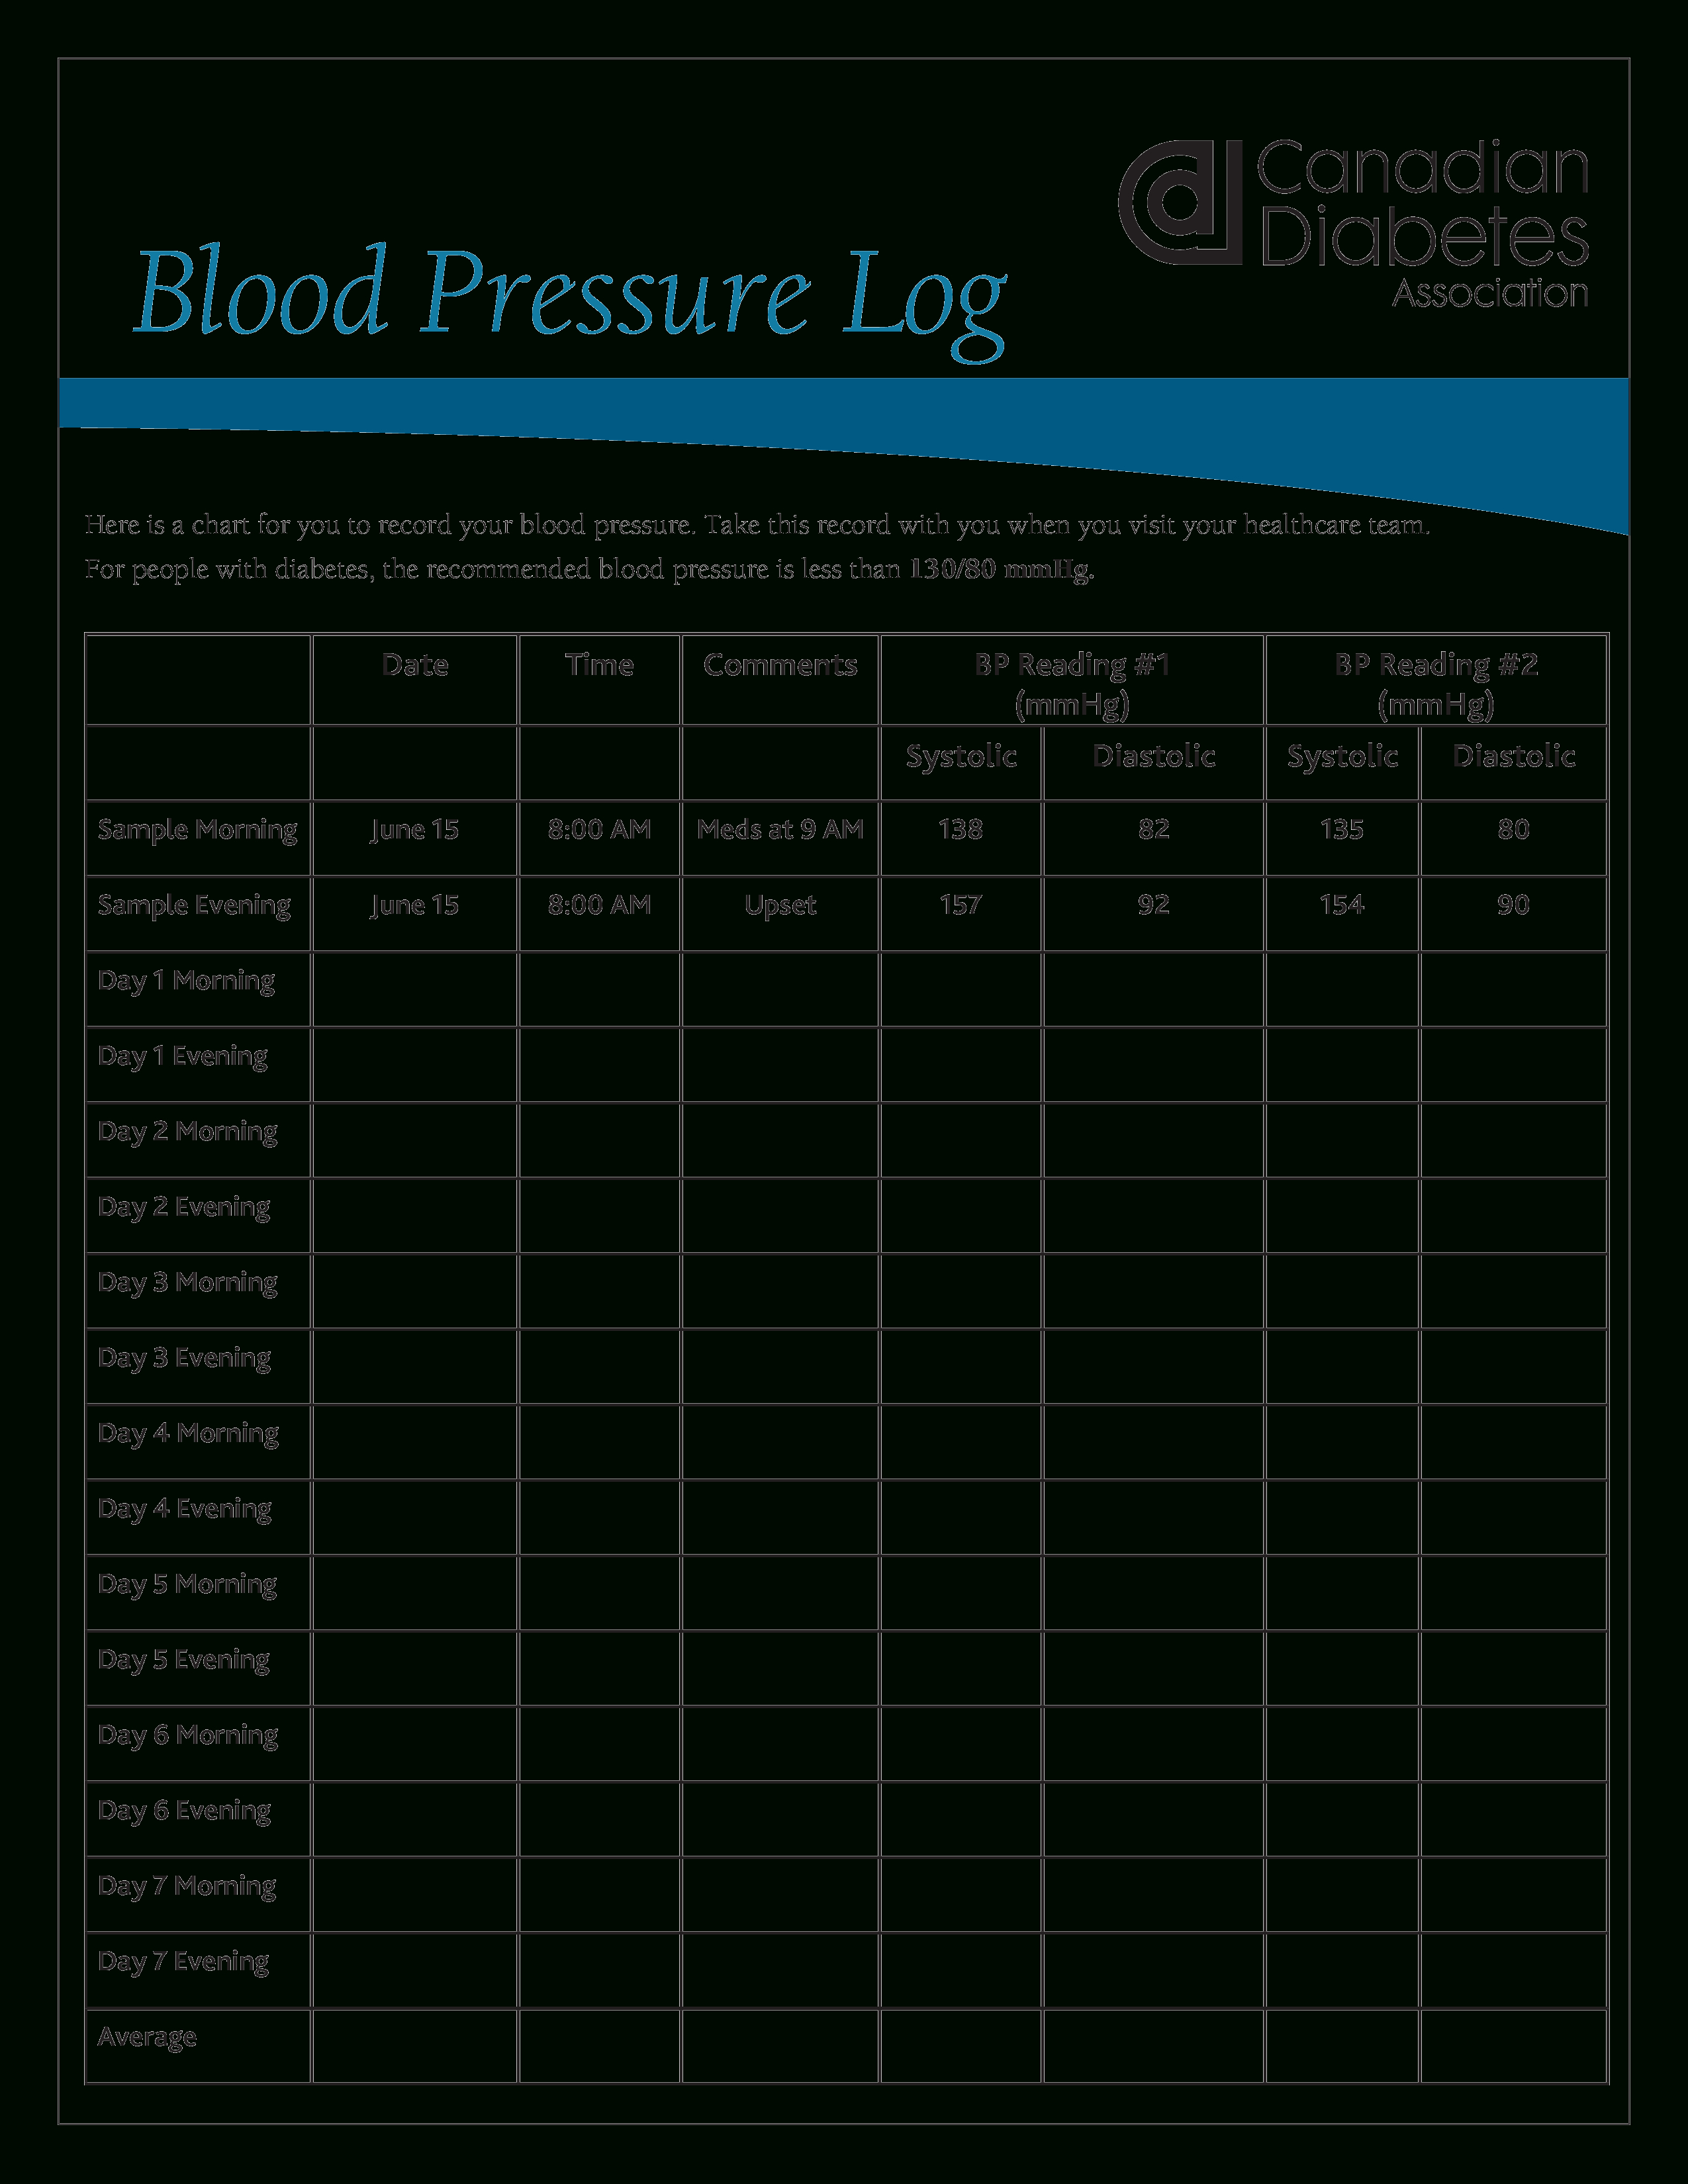 Printable Blood Pressure Log - How To Create A Blood Pressure Log | Blood Pressure Worksheets Printable